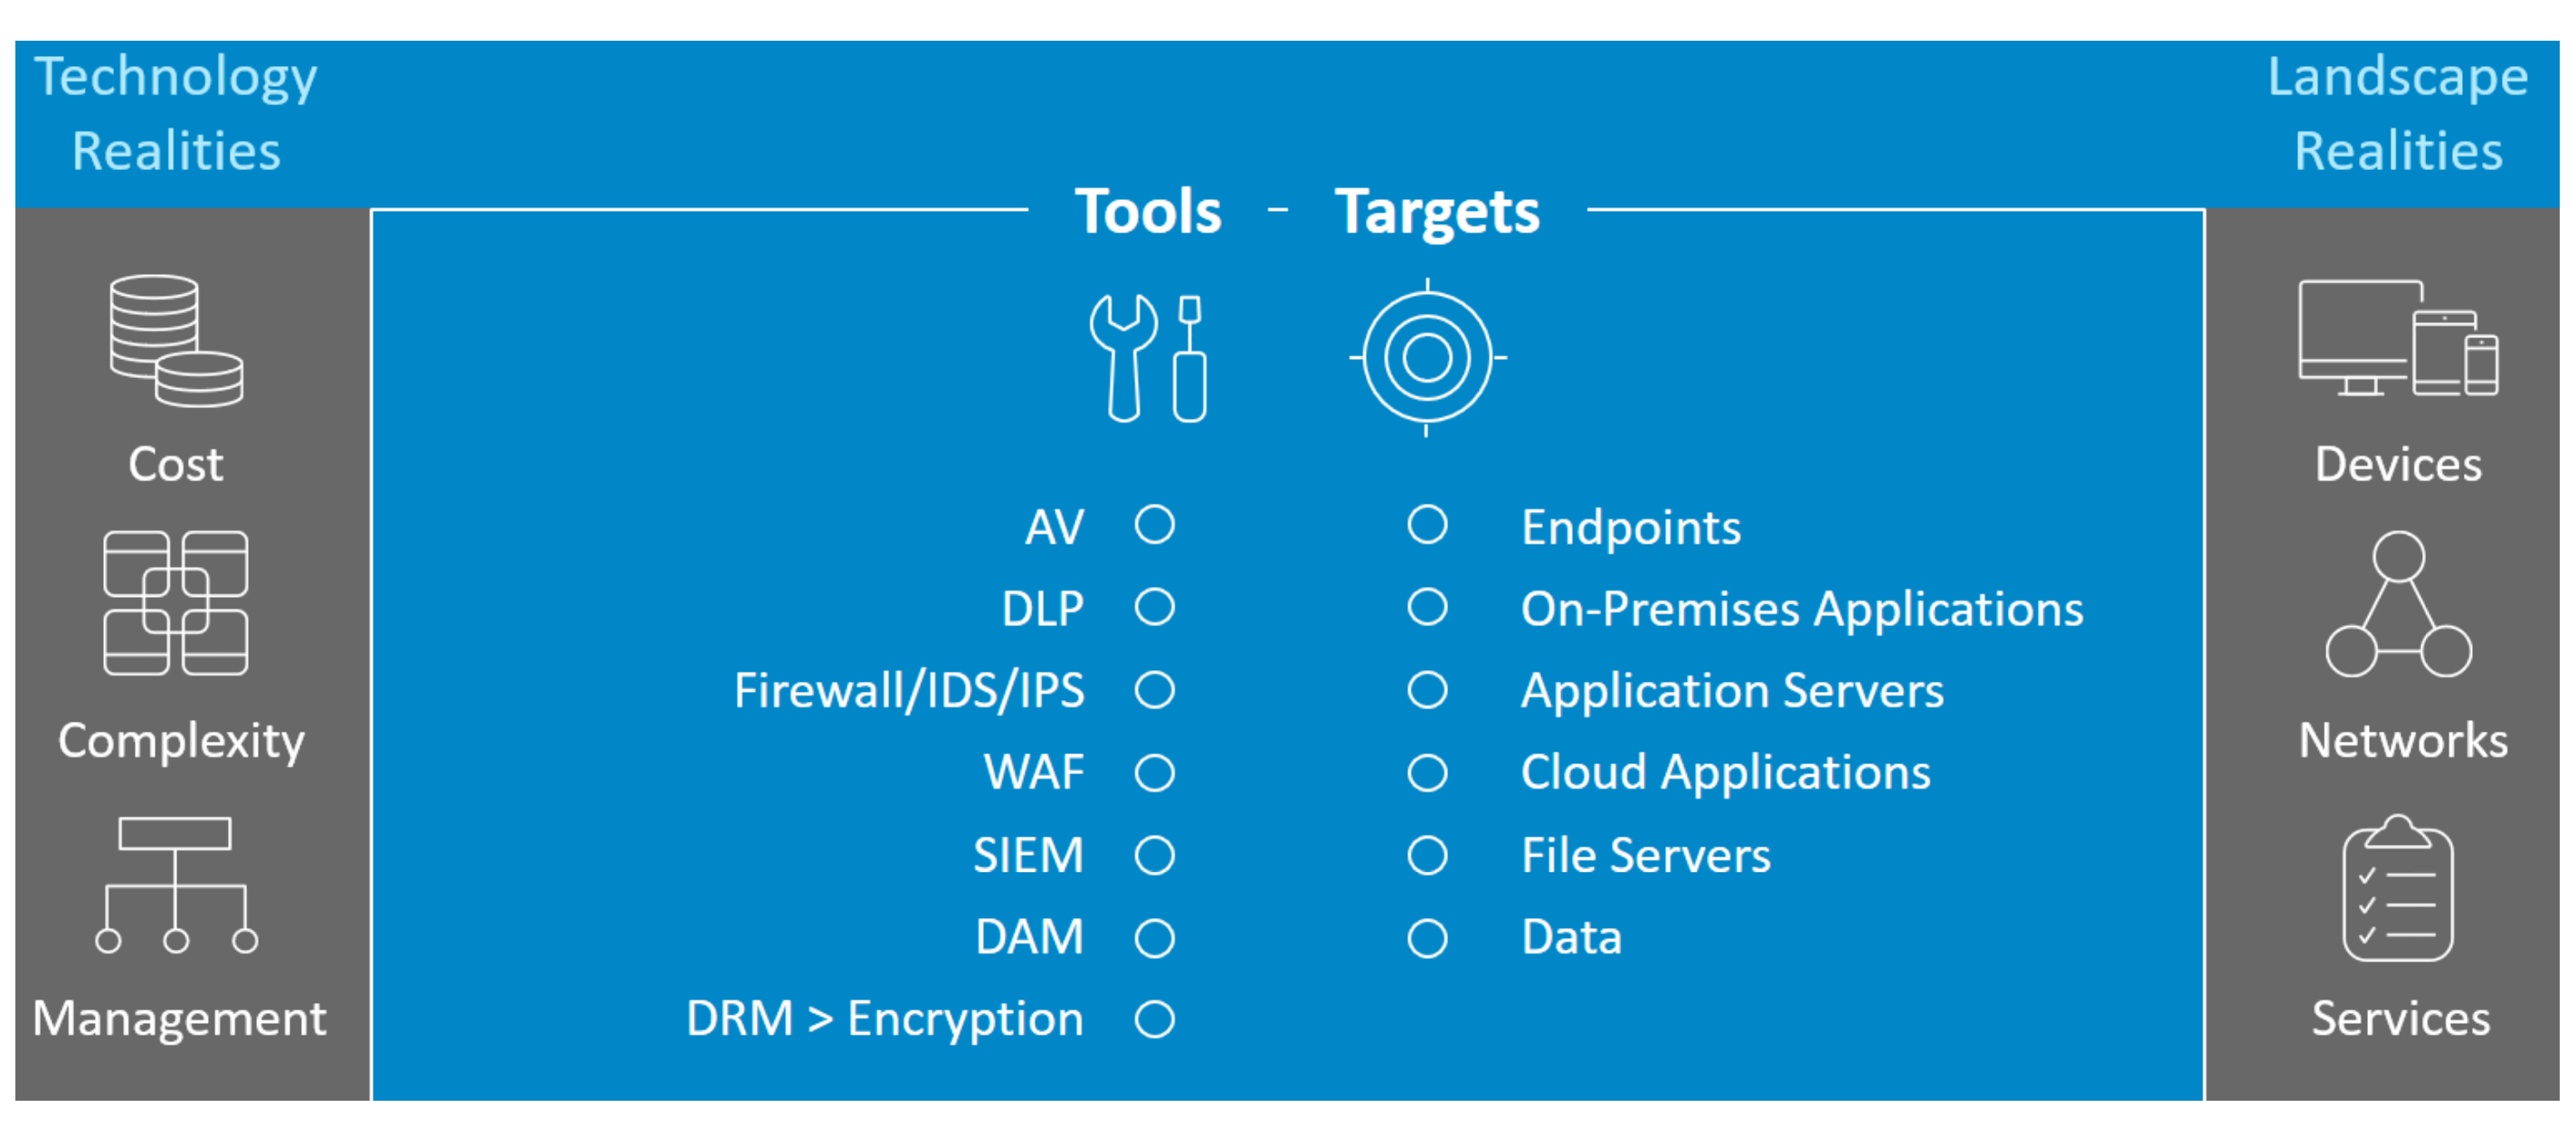 By identifying the tools and target of a data breach, Okta identifies the most cost effective and secure solution